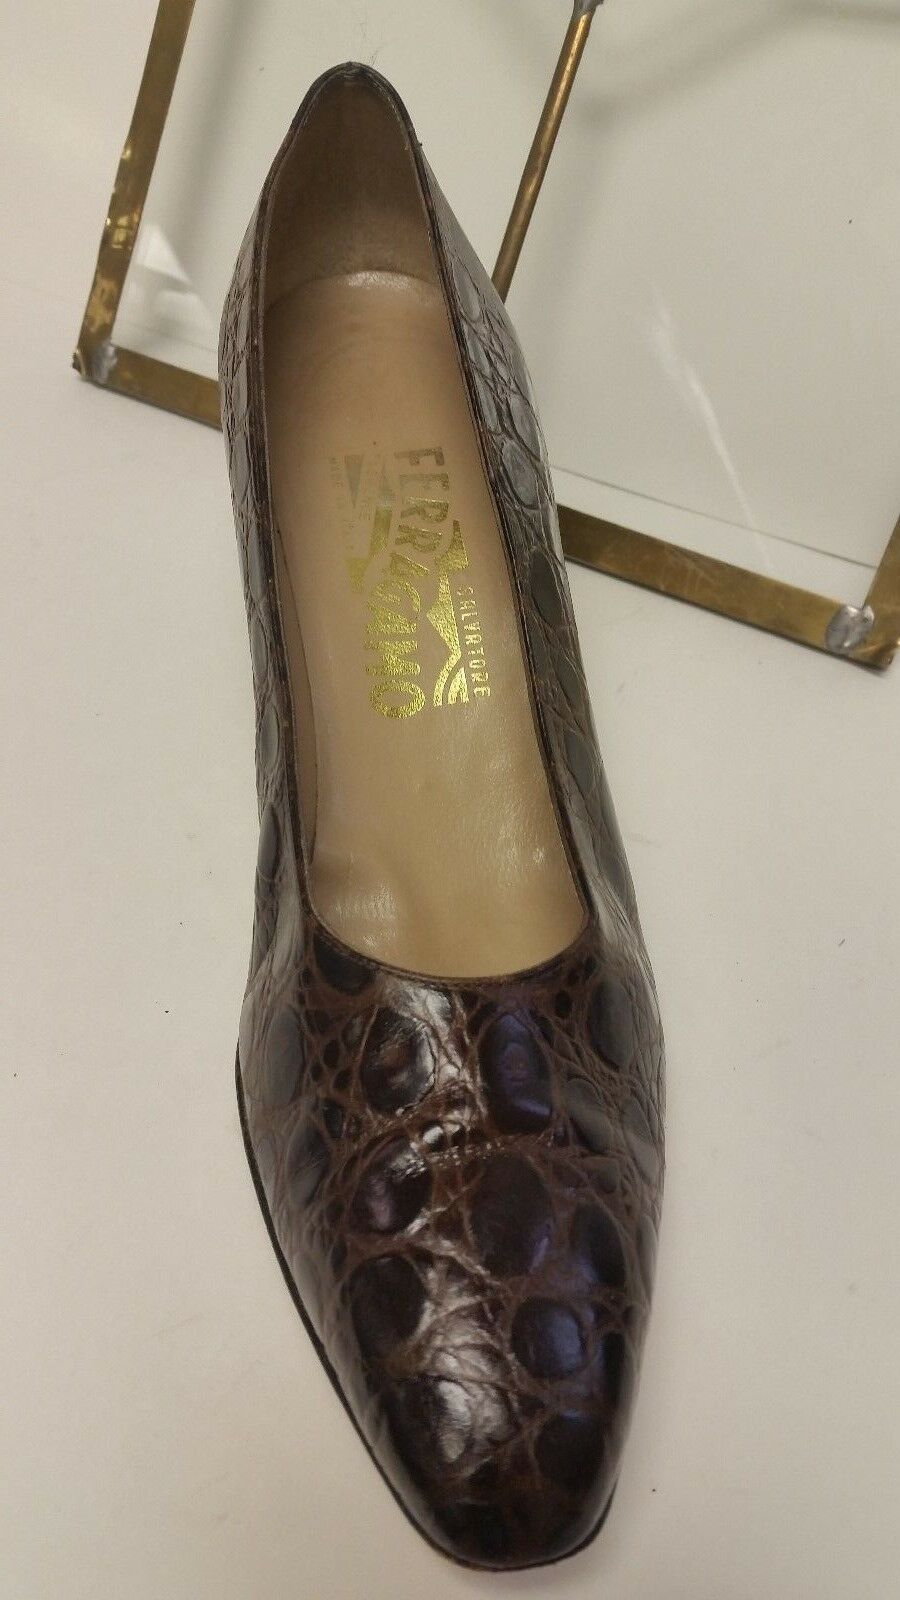 SALVATORE FERRAGAMO Vintage Brown Leather Classic 8.5 Low Heels Shoes Size 8.5 Classic AAA 1cc519